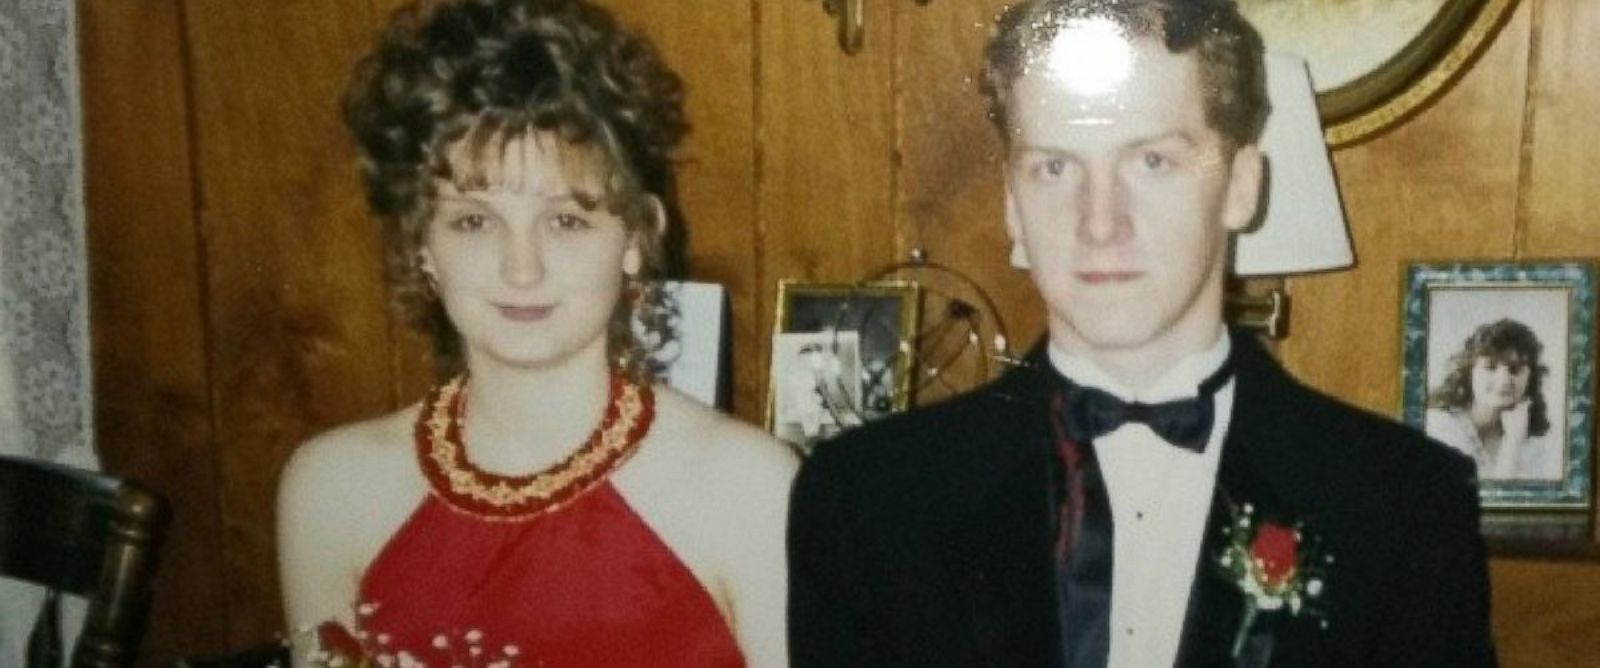 PHOTO: Jennifer Keaton and her date before their senior prom in Pennsylvania in 1994.